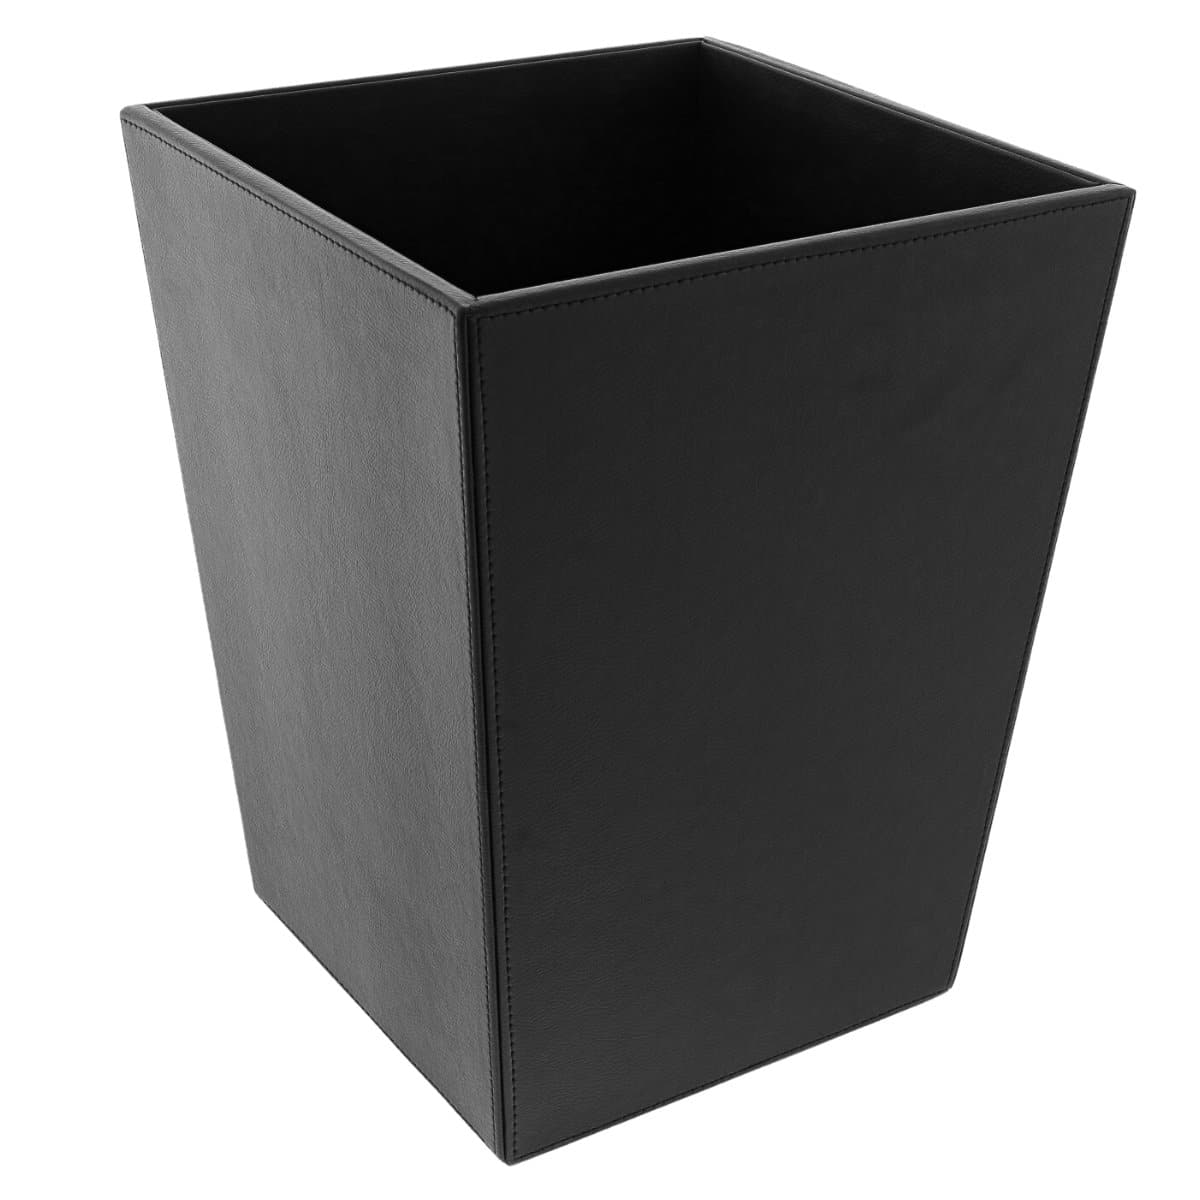 Konrad S. Waste Bin Square, 25 x 25 x H33 cm, PU Leather, Black